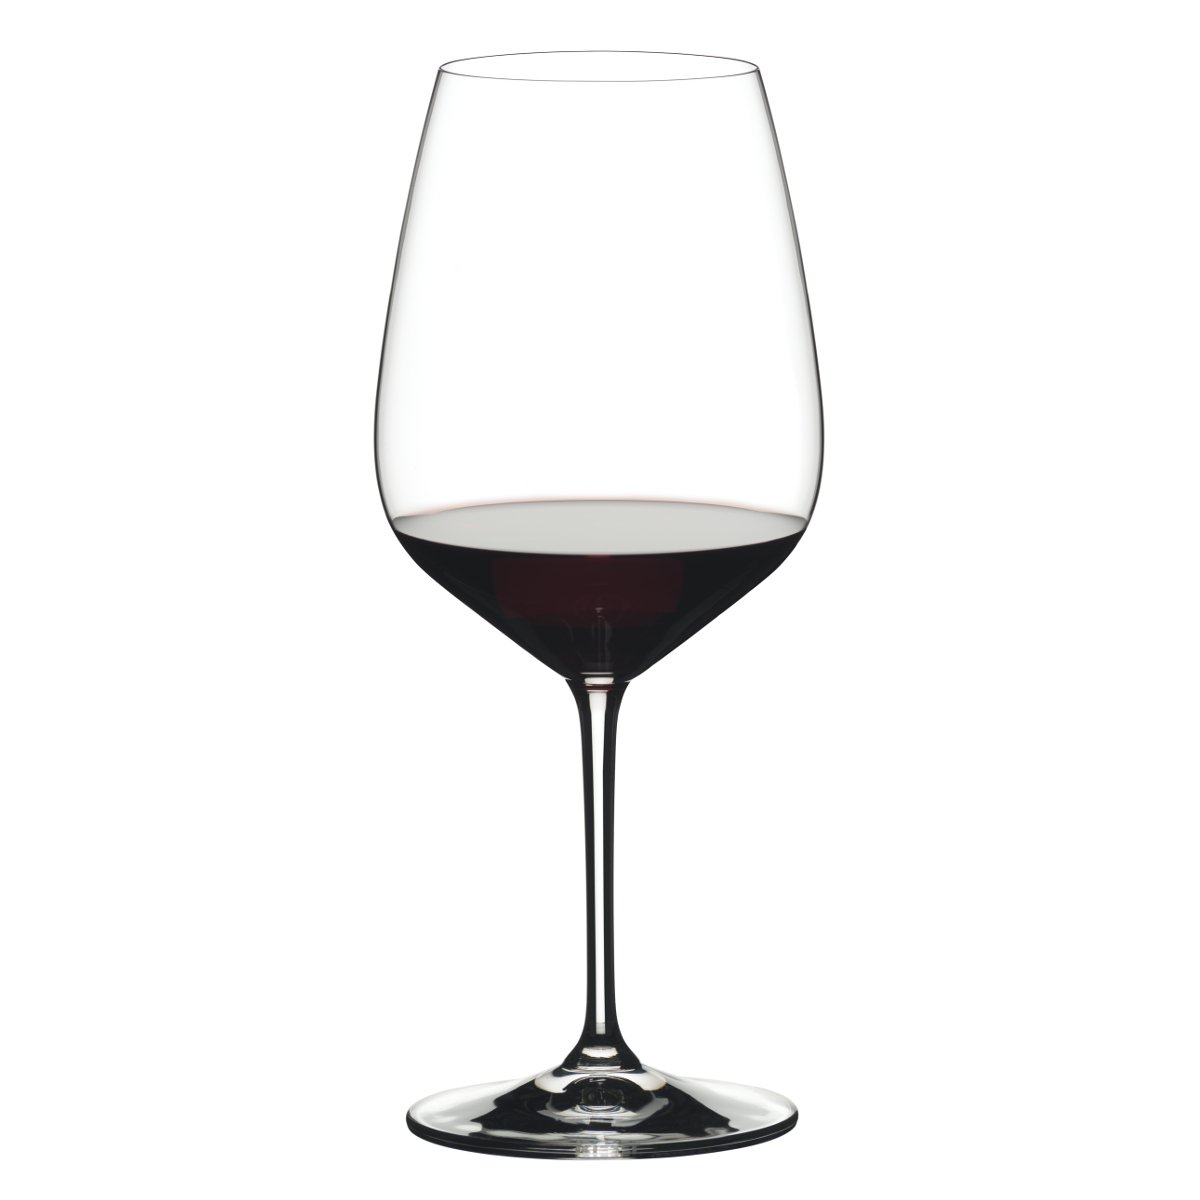 Riedel Extreme Crystal Cabernet Wine Glass, Buy 3 Get 4 Glasses